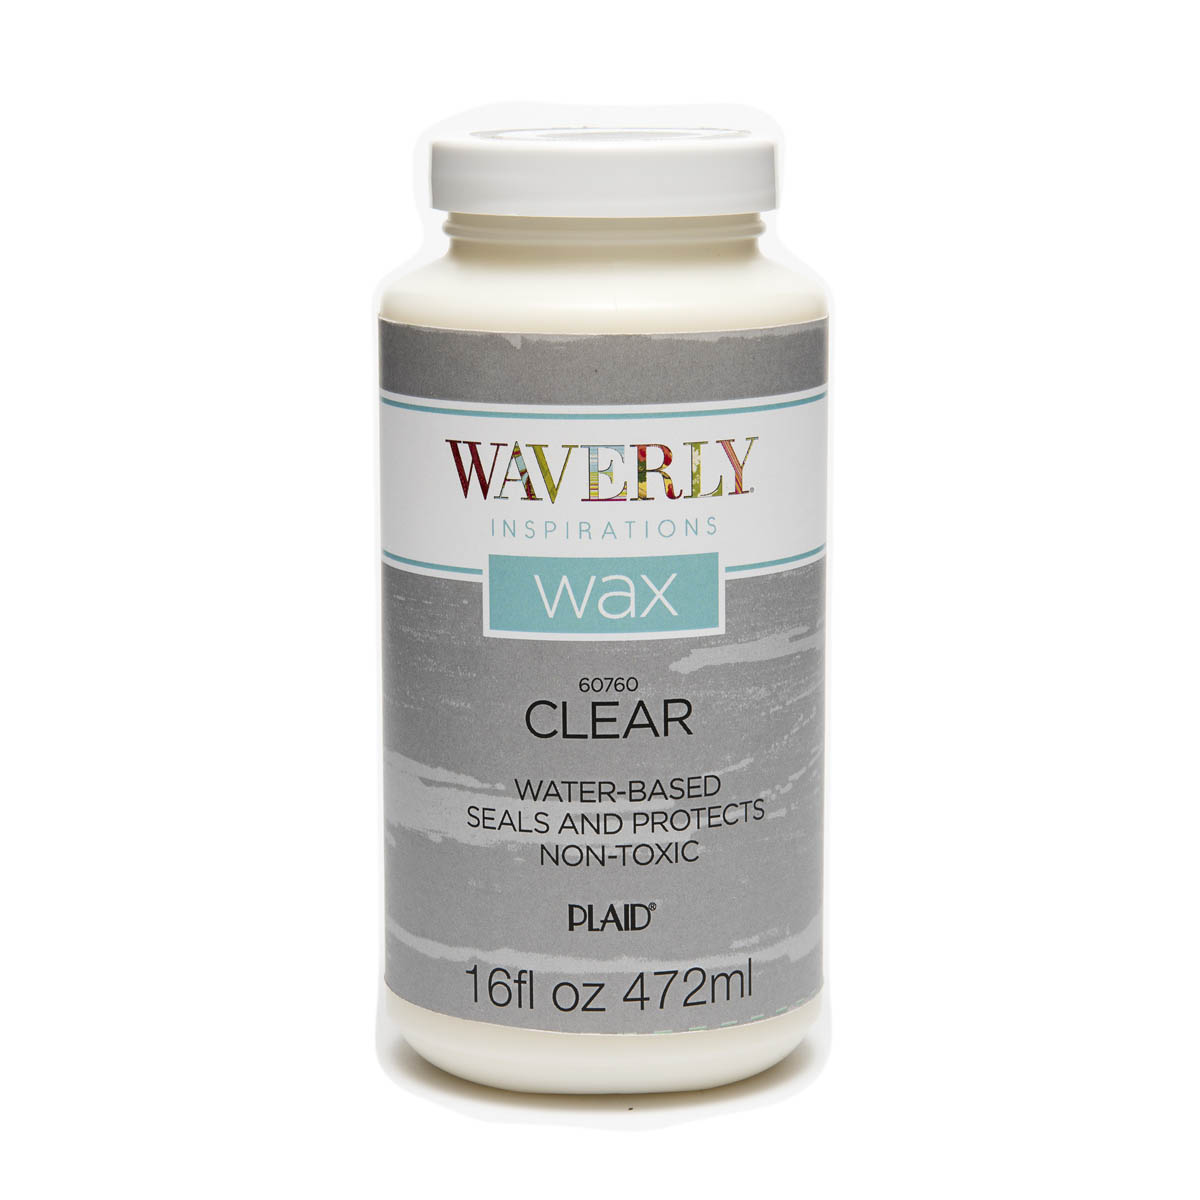 Waverly ® Inspirations Wax - Clear, 16 oz.